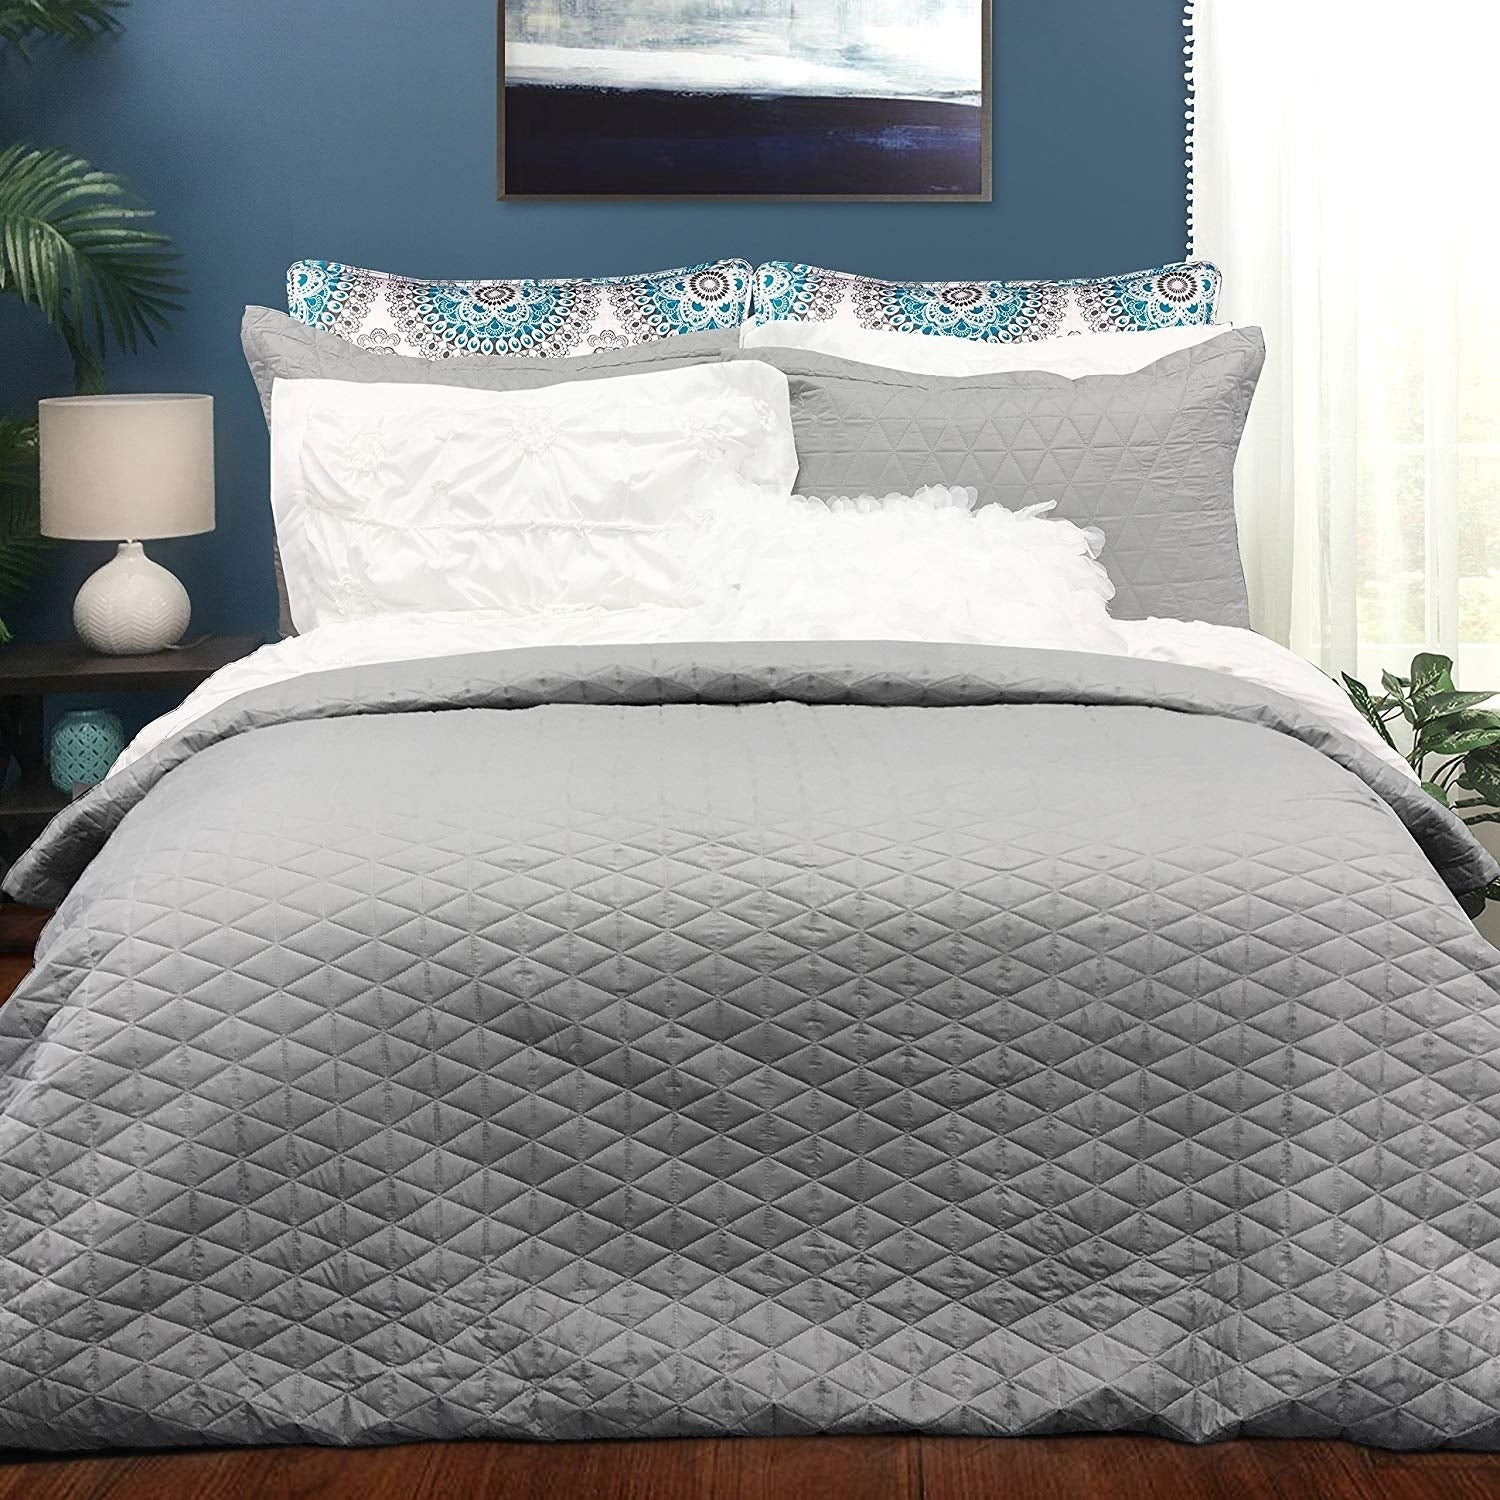 Shop driftaway victoria 3 pieces bedding quilted duvet cover on sale free shipping on orders over 45 overstock com 22582702